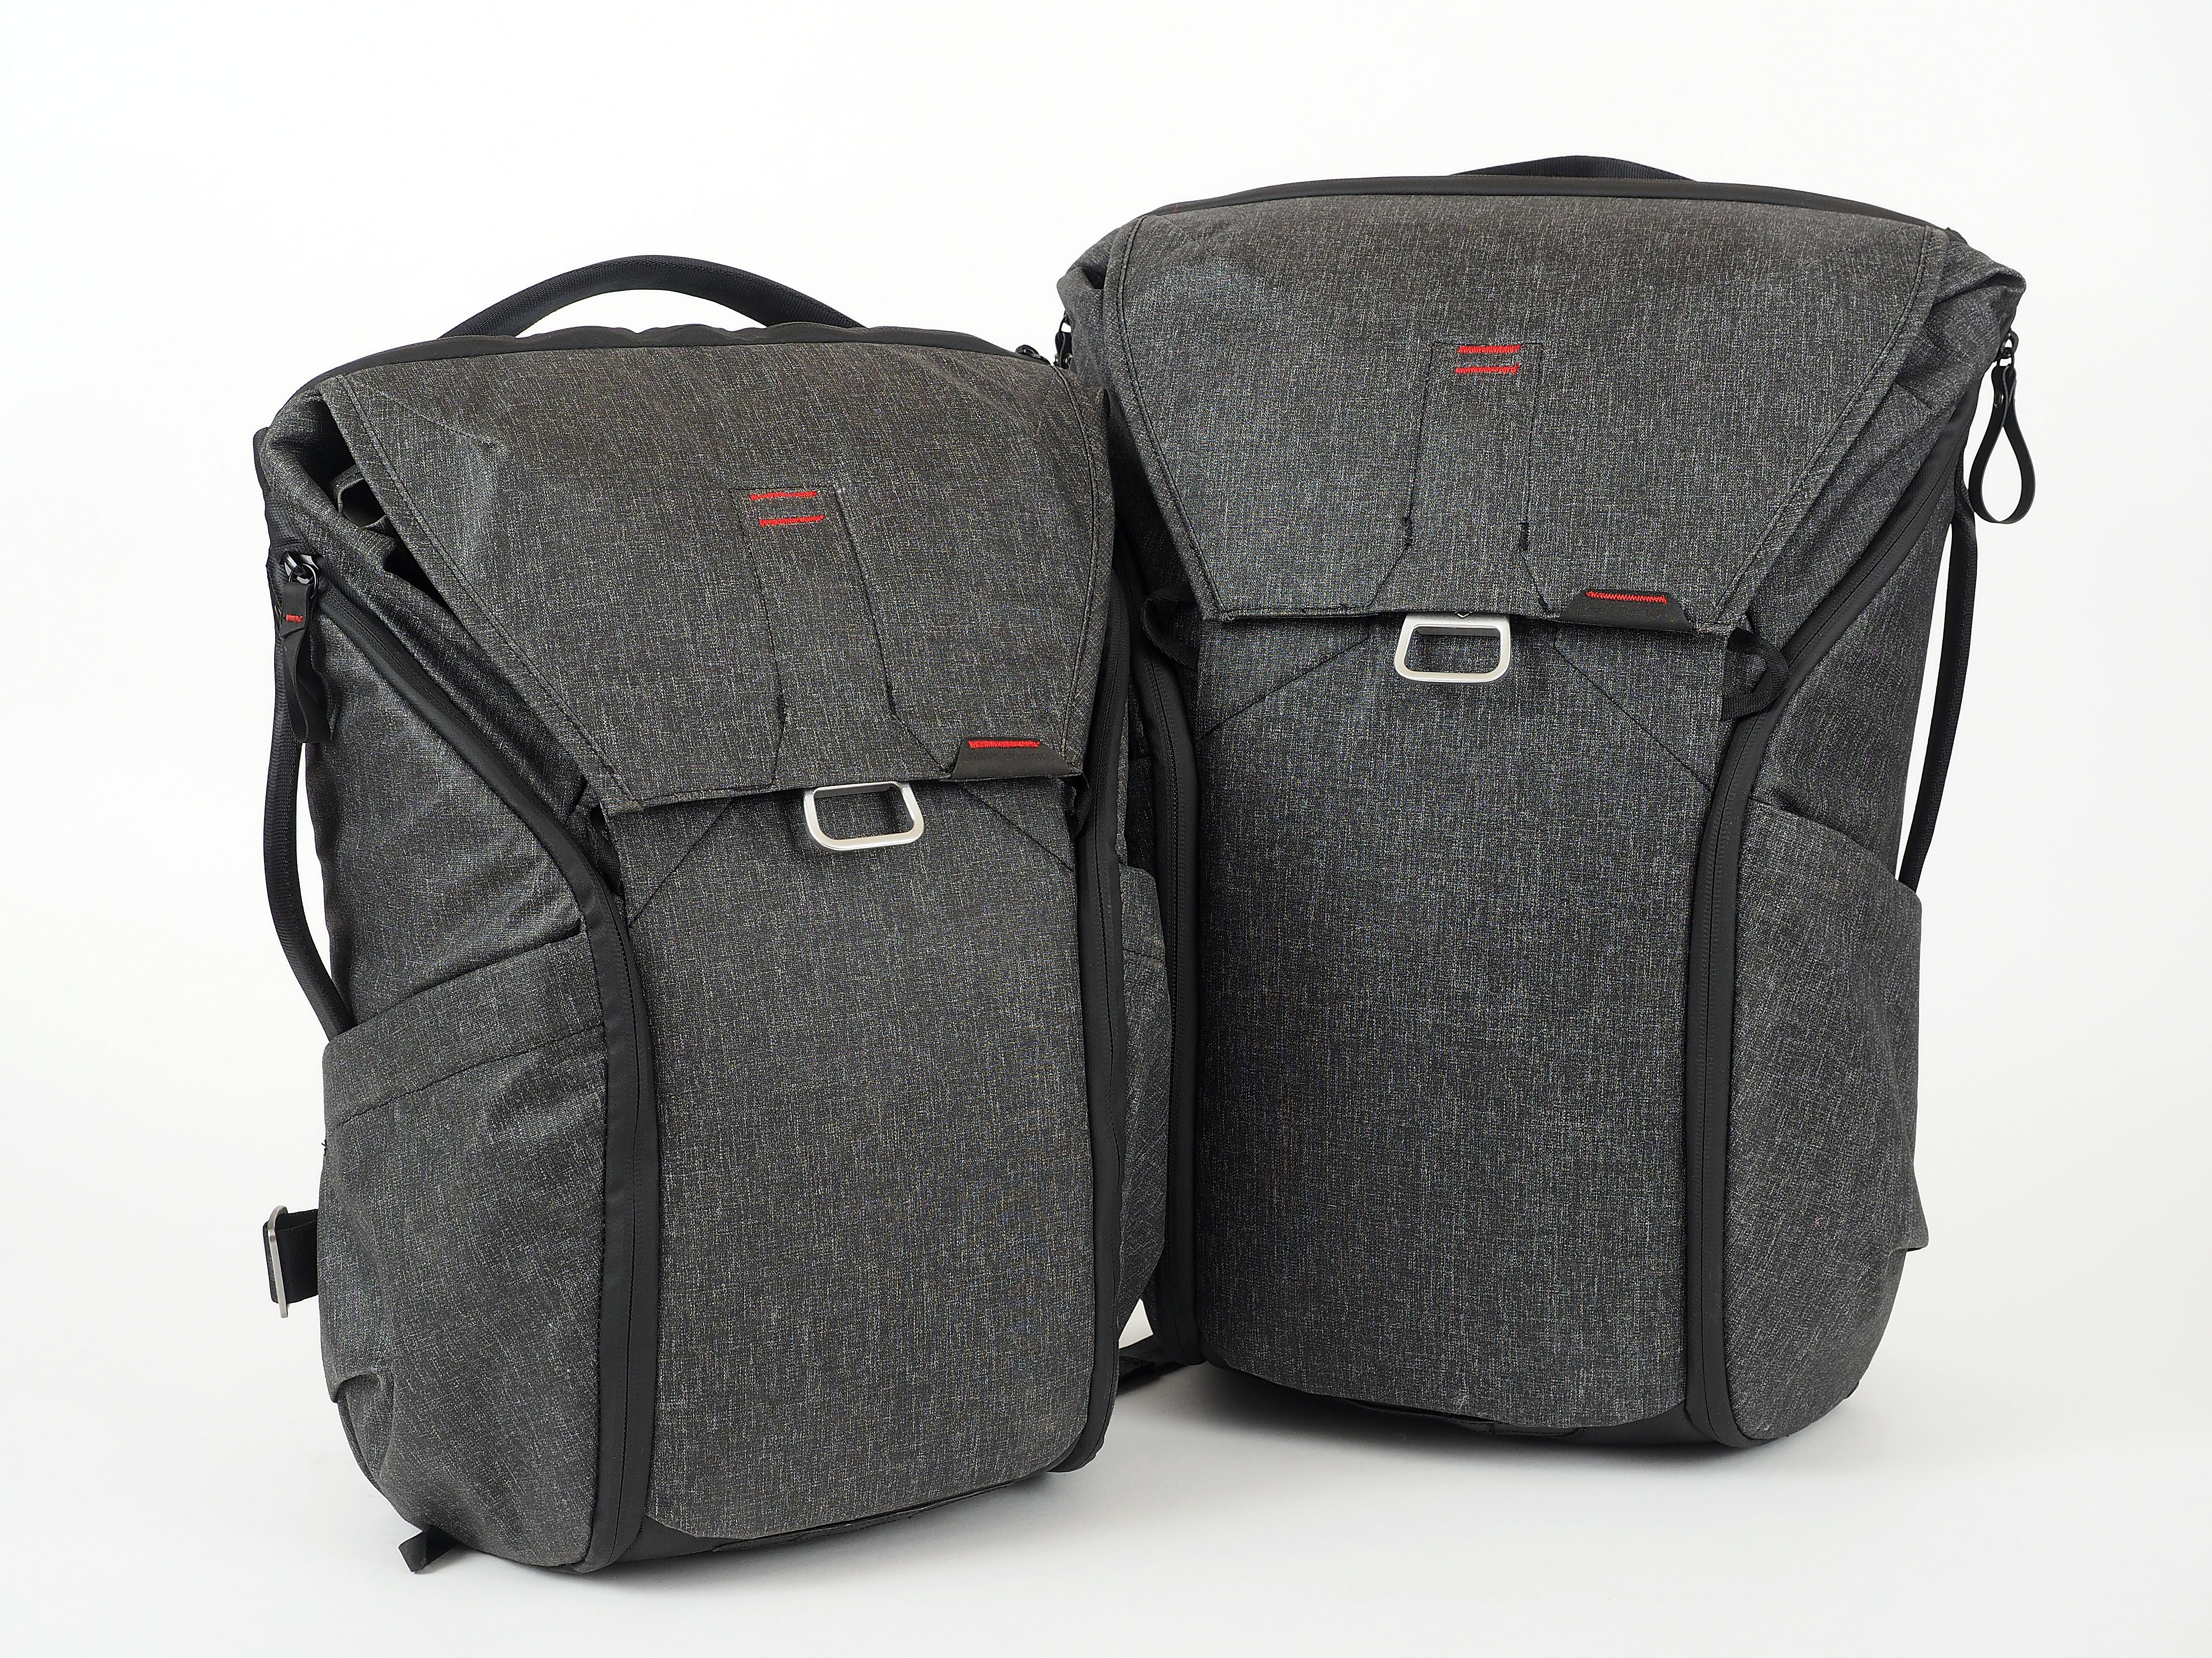 Peak Design Everyday Backpack Review  Digital Photography Review 2f4fd6525157b